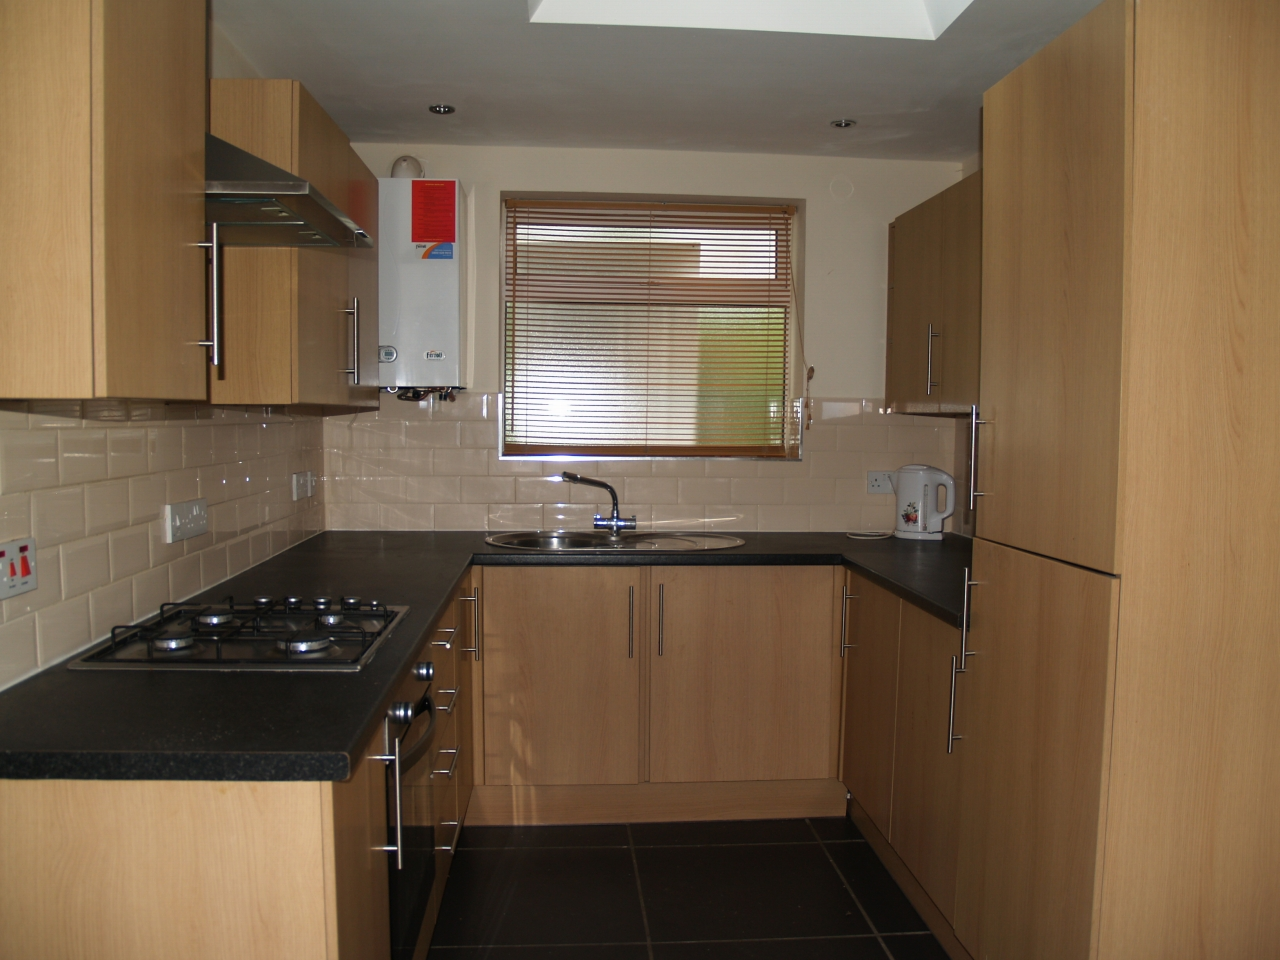 3 bedroom mid terraced house For Sale in Birmingham - Photograph 4.